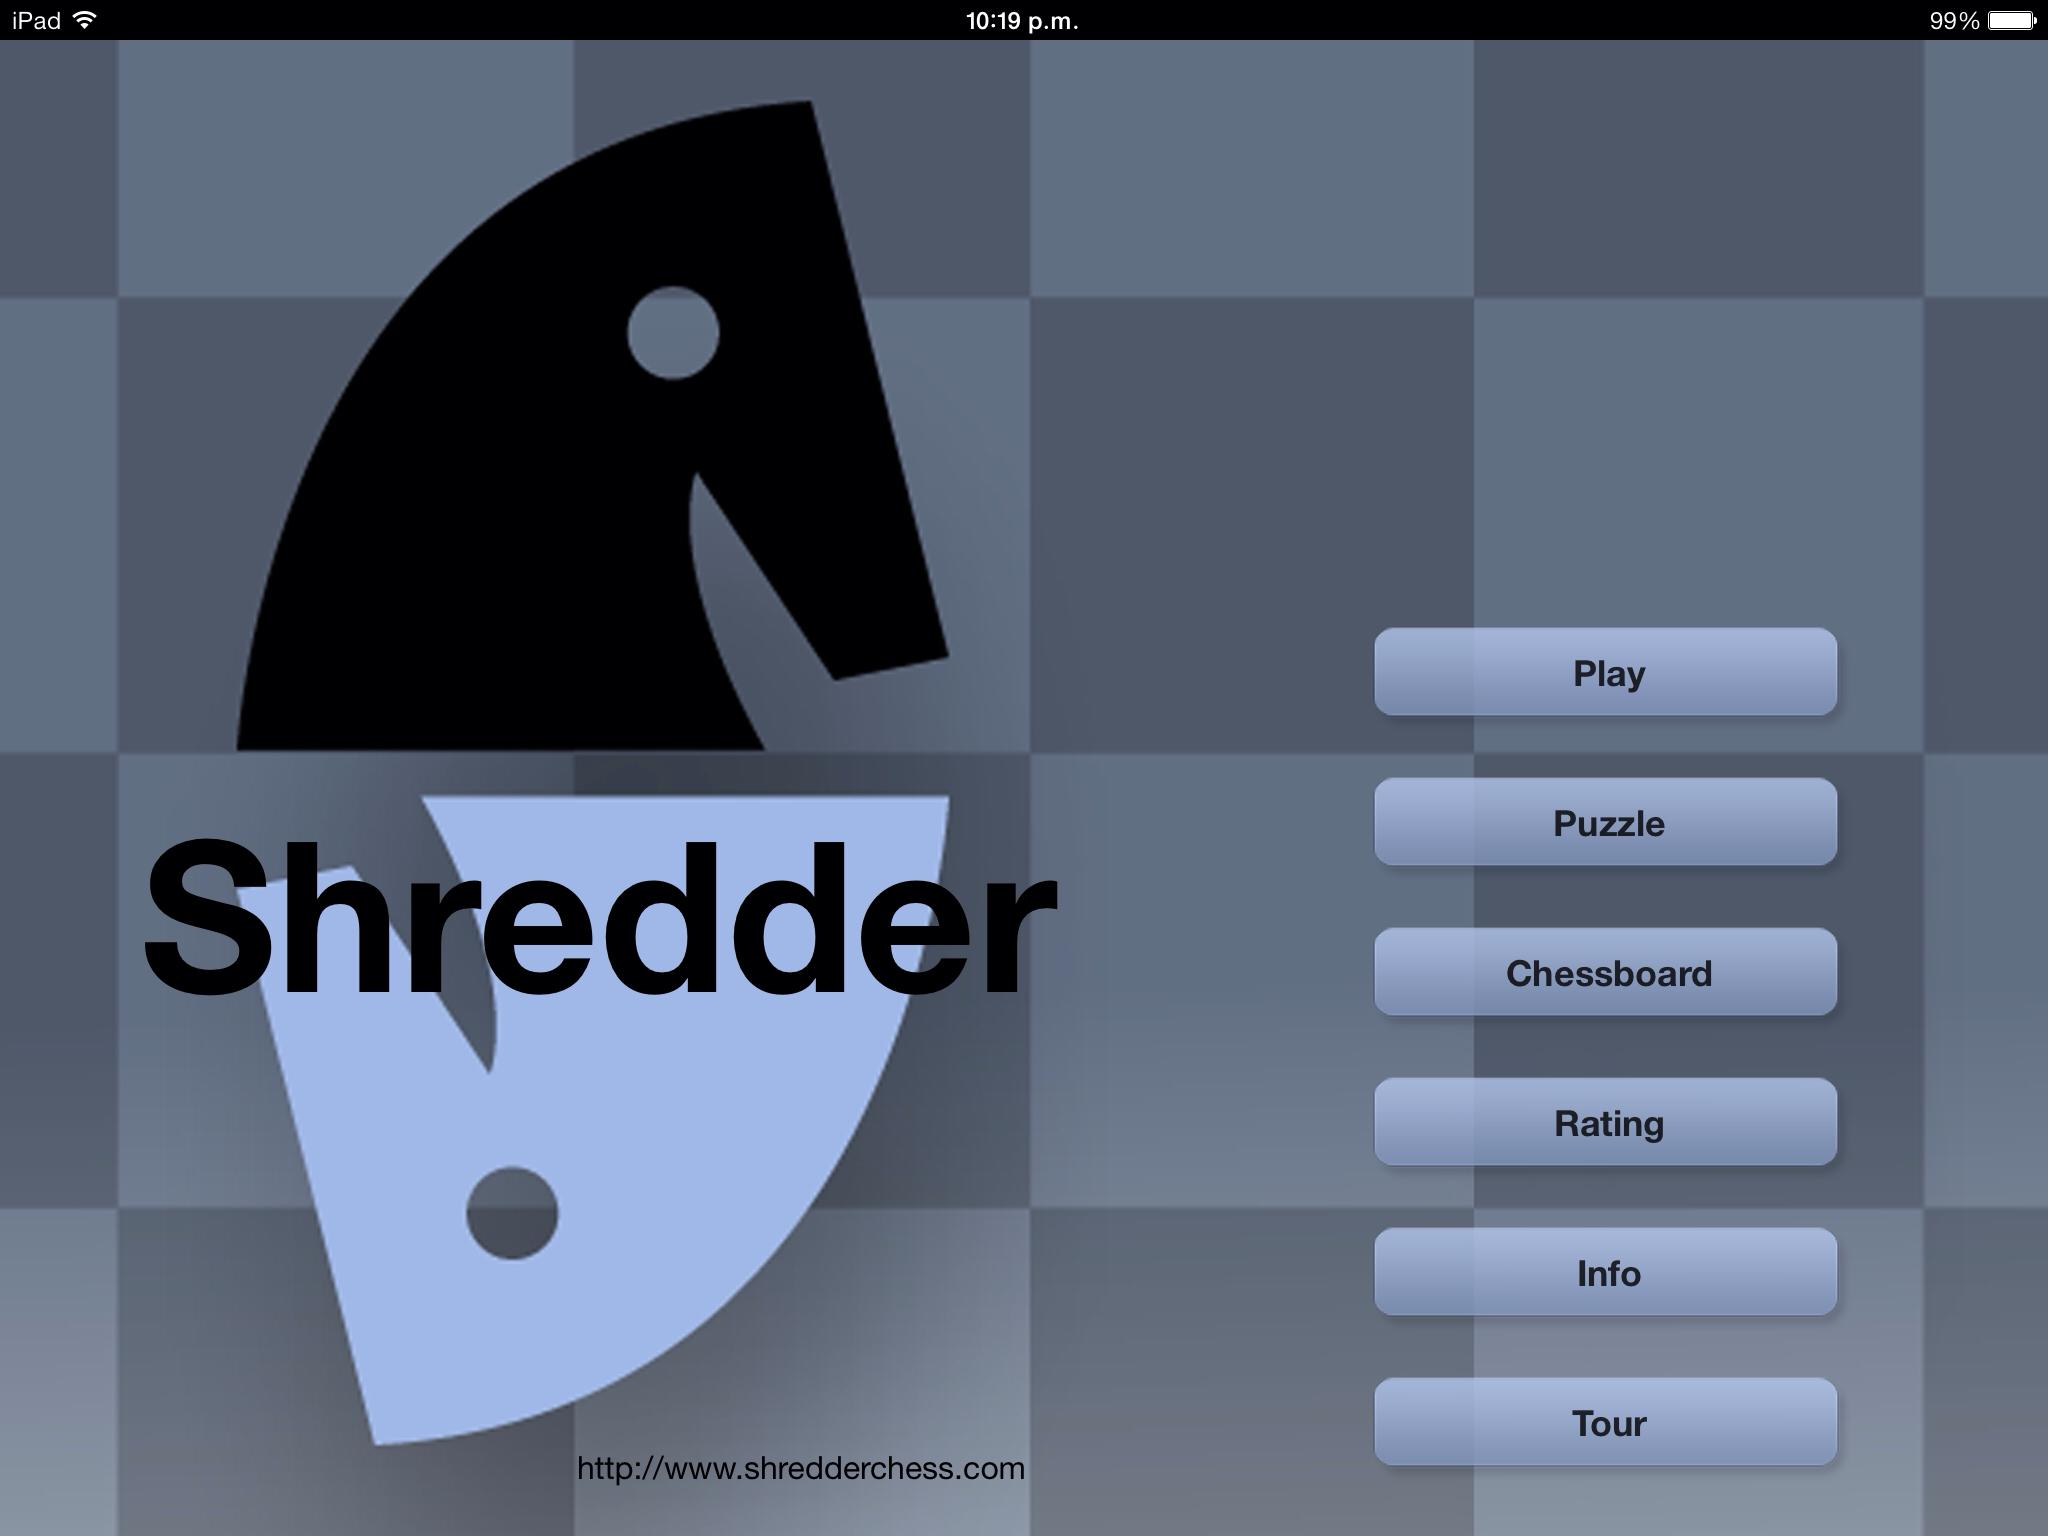 10 Things You Need to Know About Shredder App